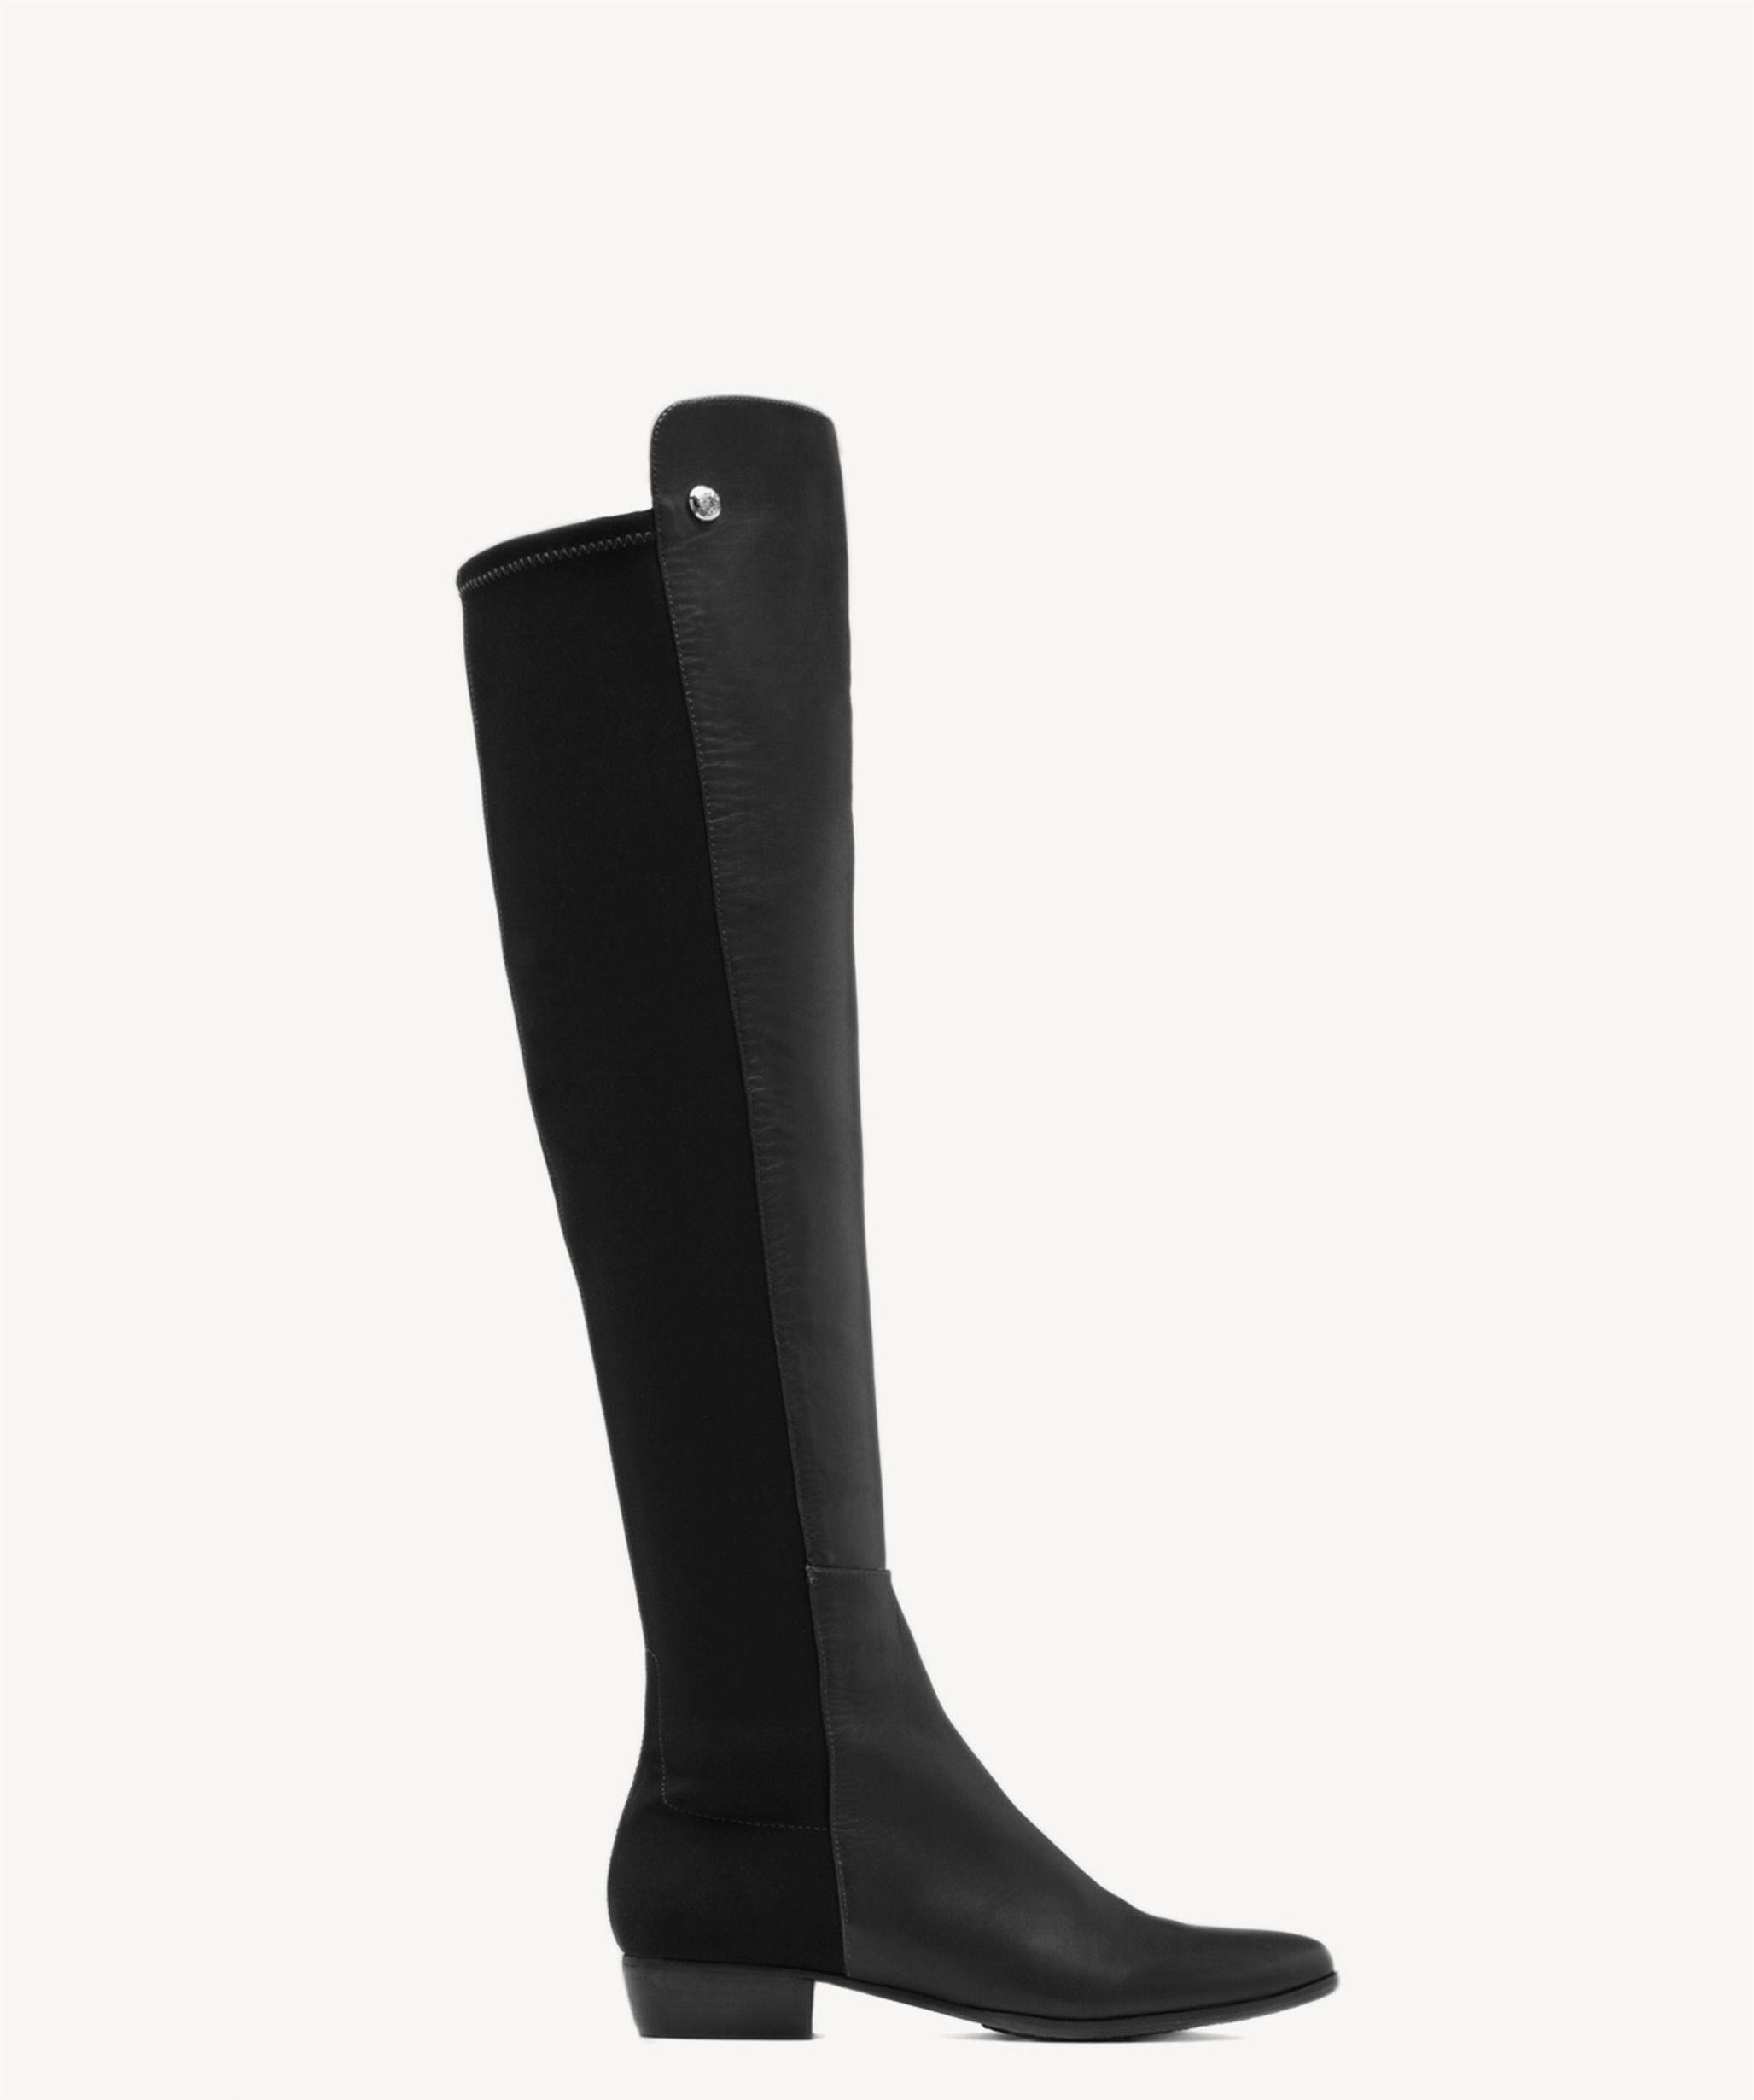 761aa3d9a7b Lyst - Vince Camuto Karita – Neoprene & Leather Boot in Black